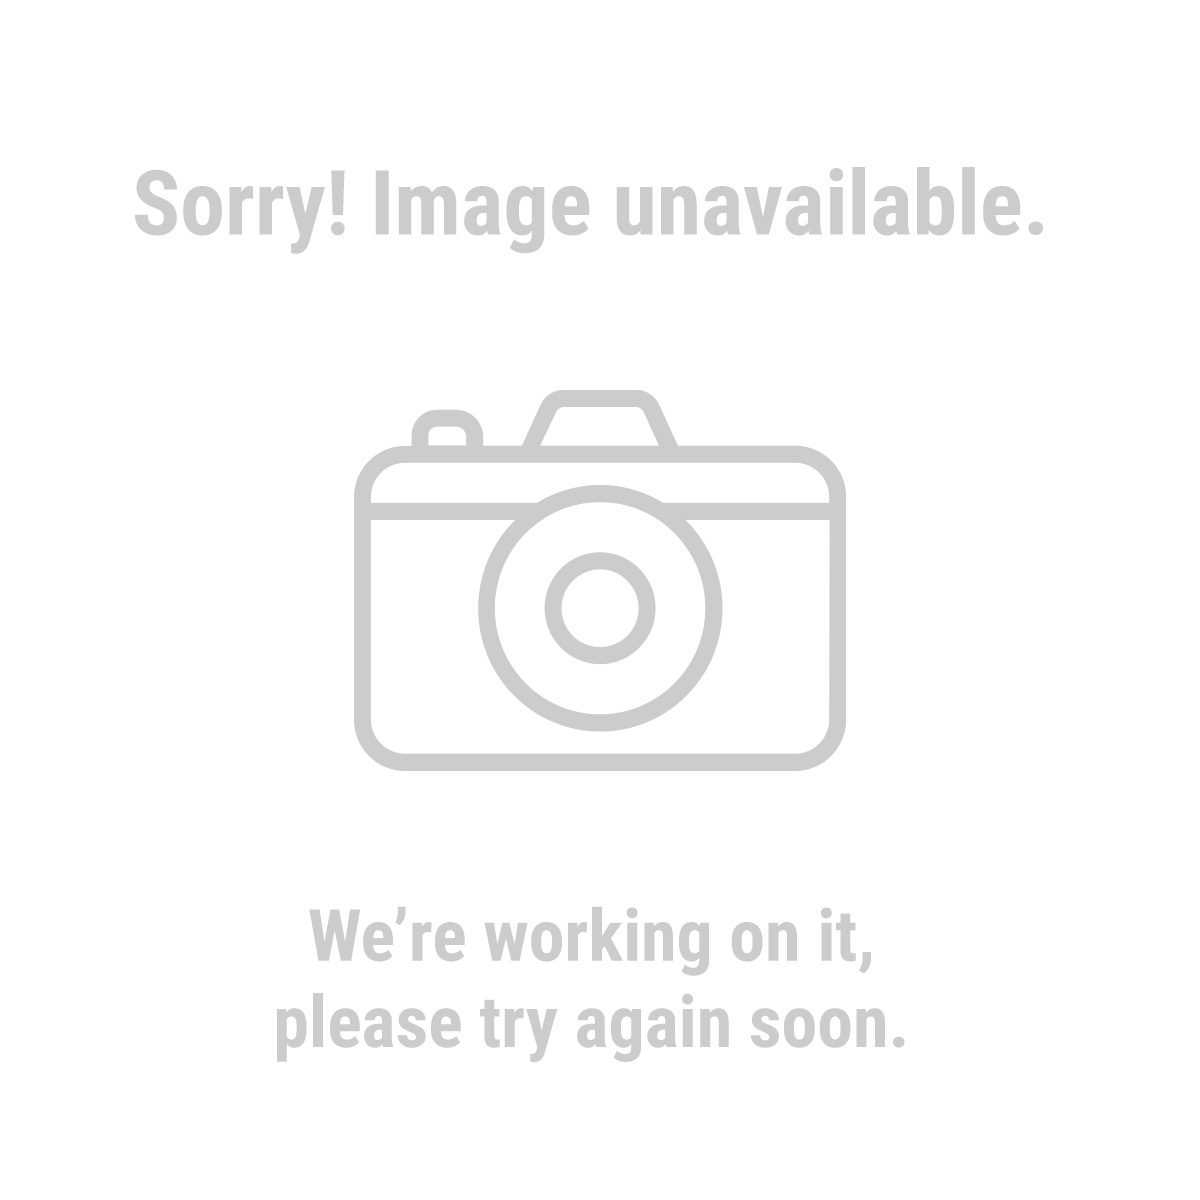 "Warrior 68890 4"" Segmented wet or dry Cut Diamond Blade for Masonry"